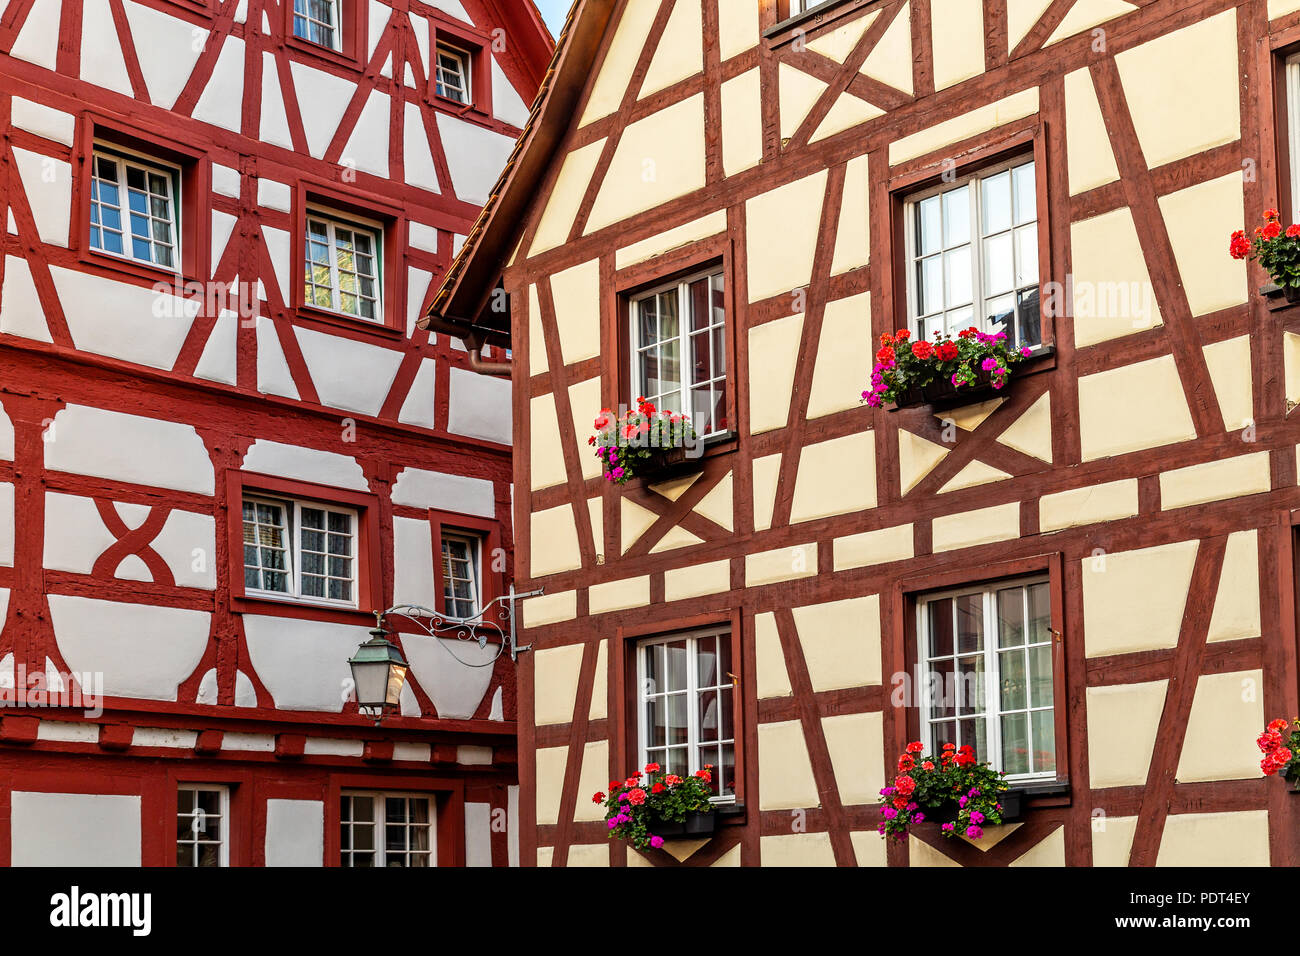 Half-timbered red and white facades of houses in Meersburg, typical example of Fachwerk architecture spread in Germany and France, Strasbourg - Stock Image